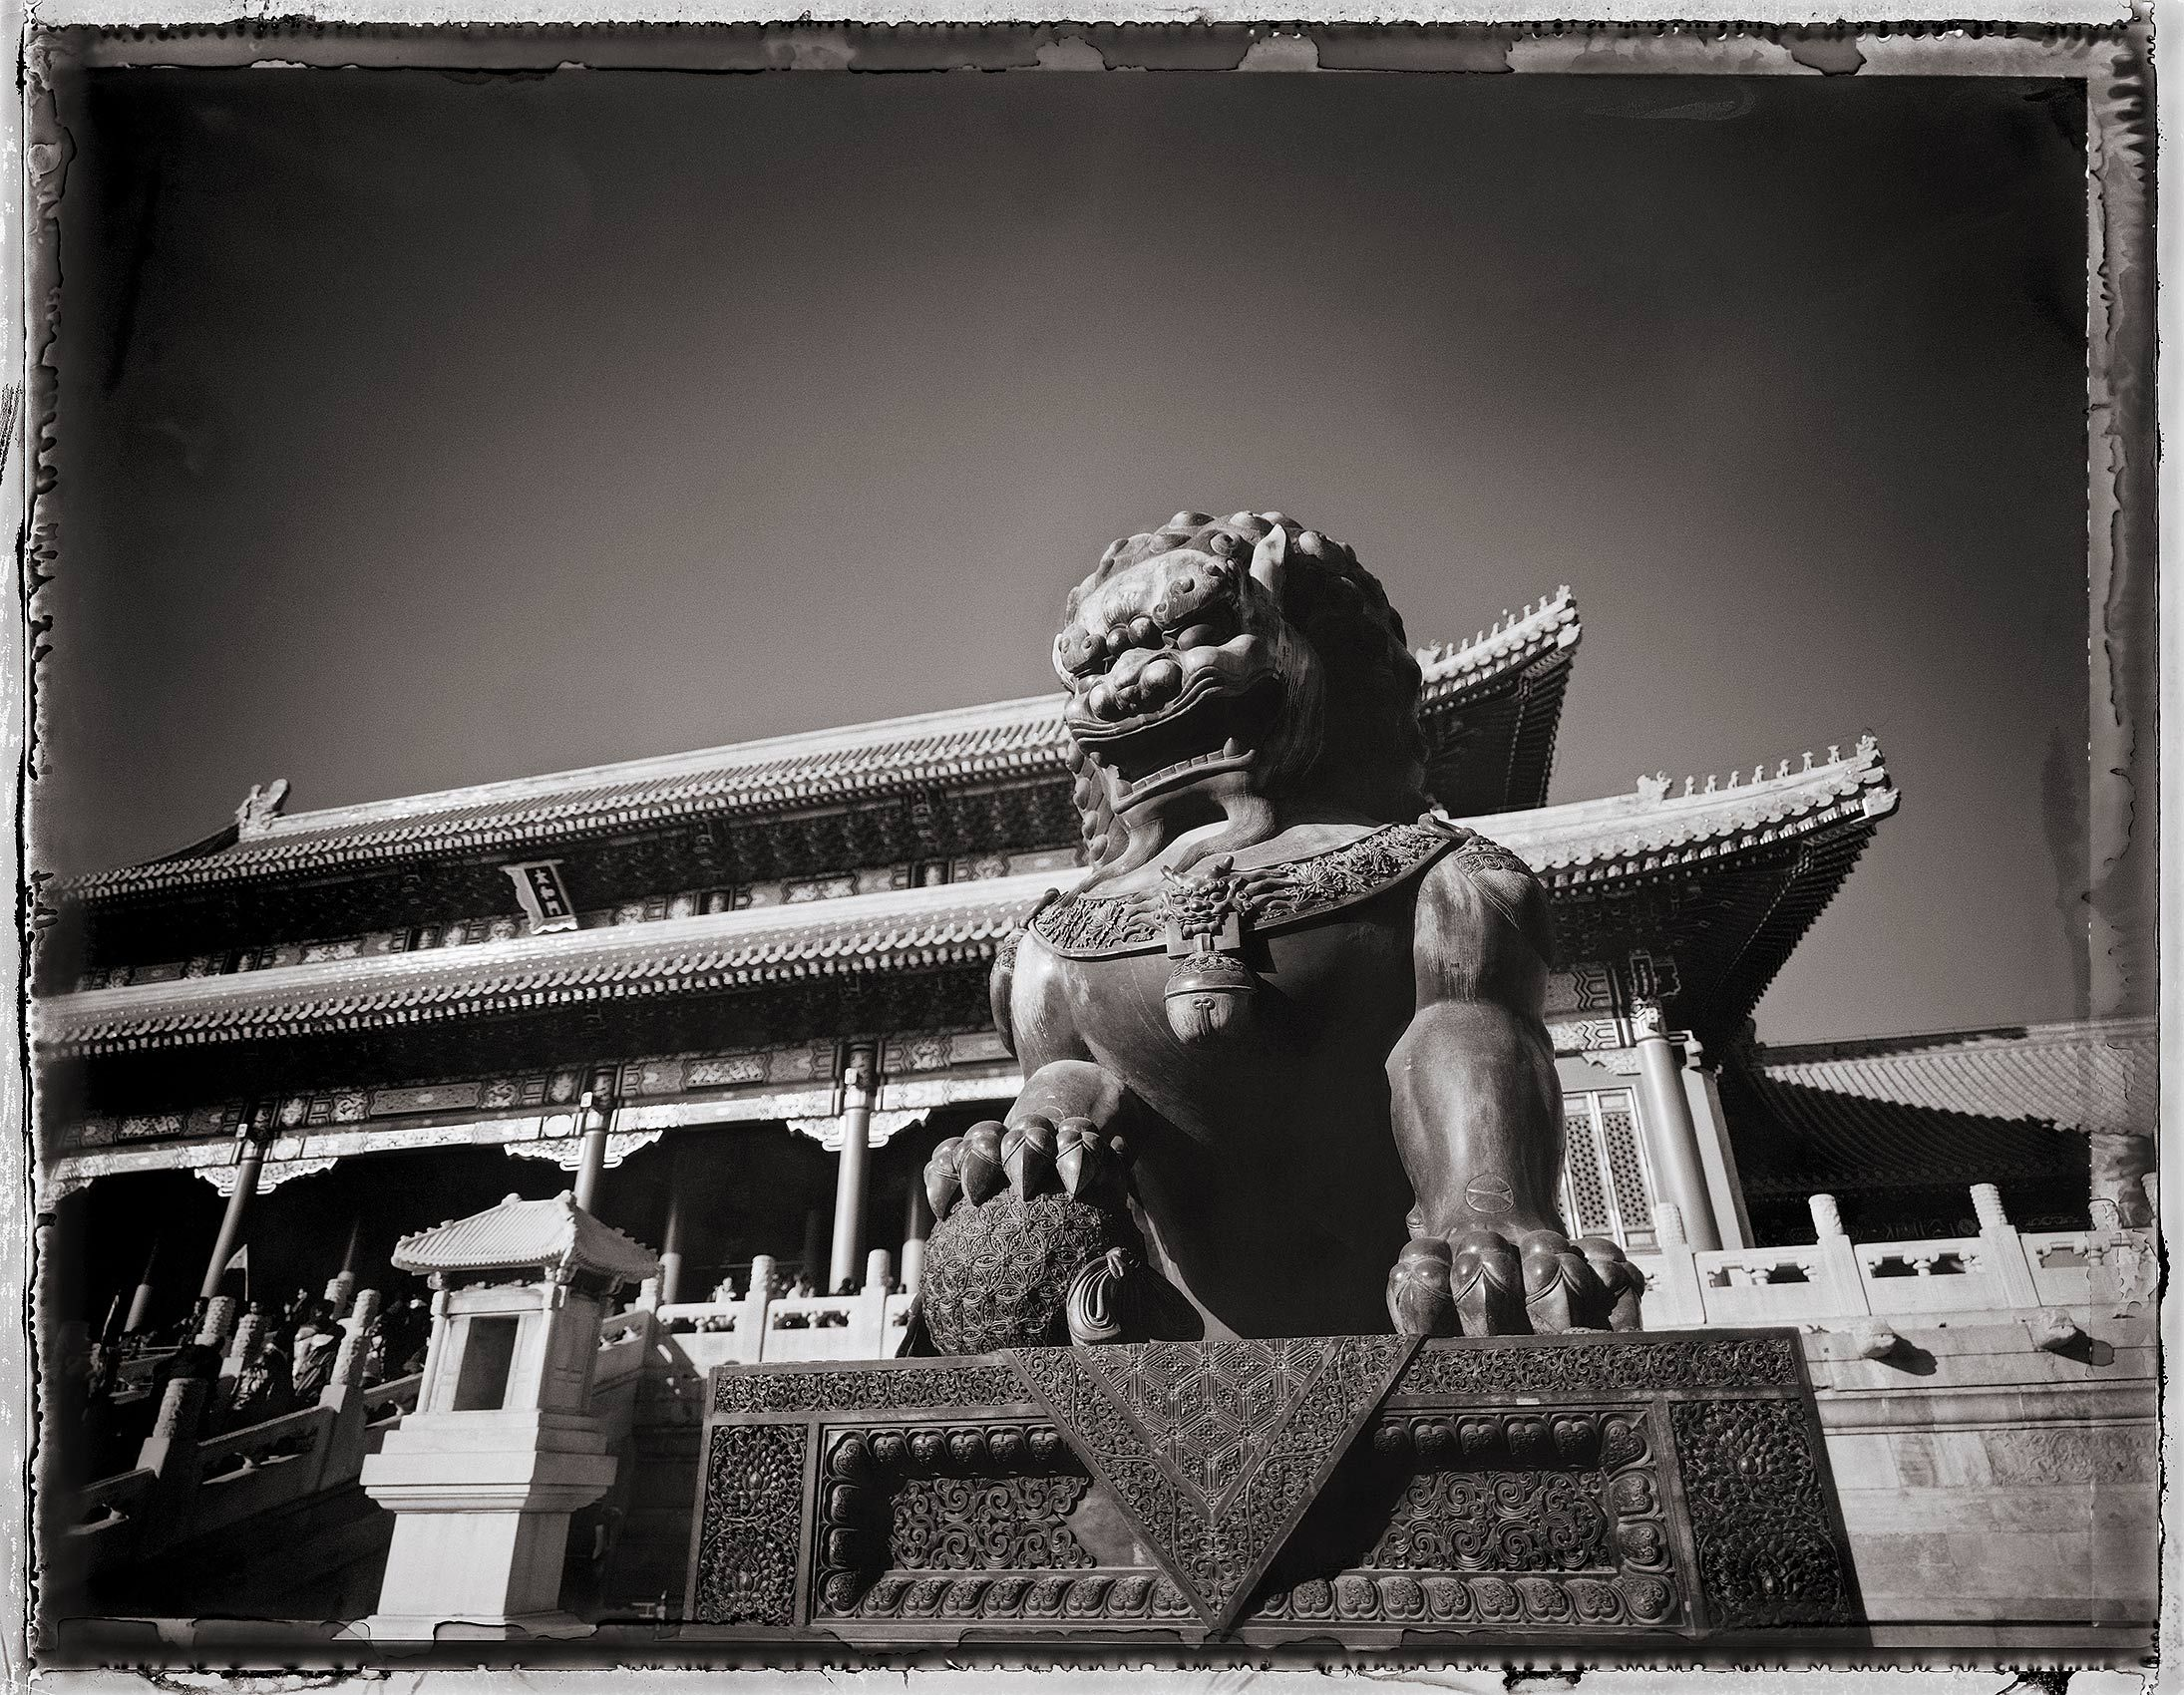 Foo Dog, Forbidden City, Beijing